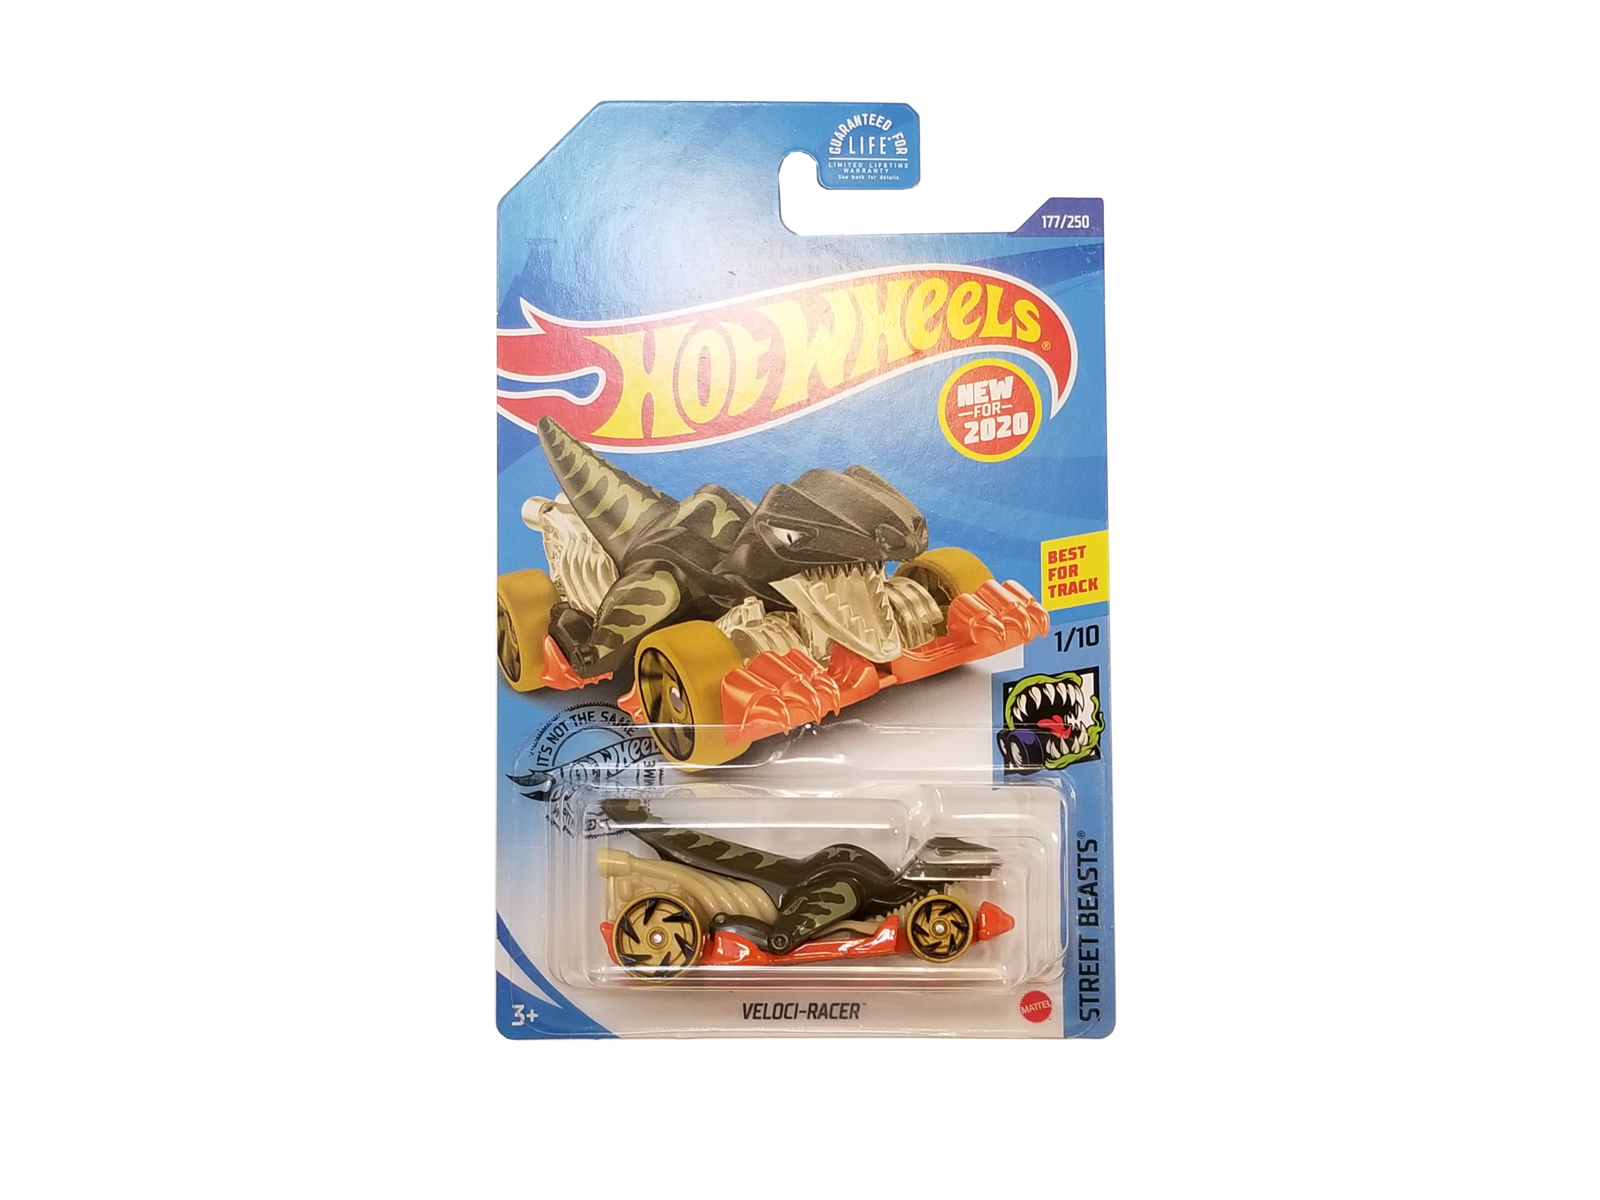 Hot wheels veloci racerstreet beasts ghf04 m9c1a